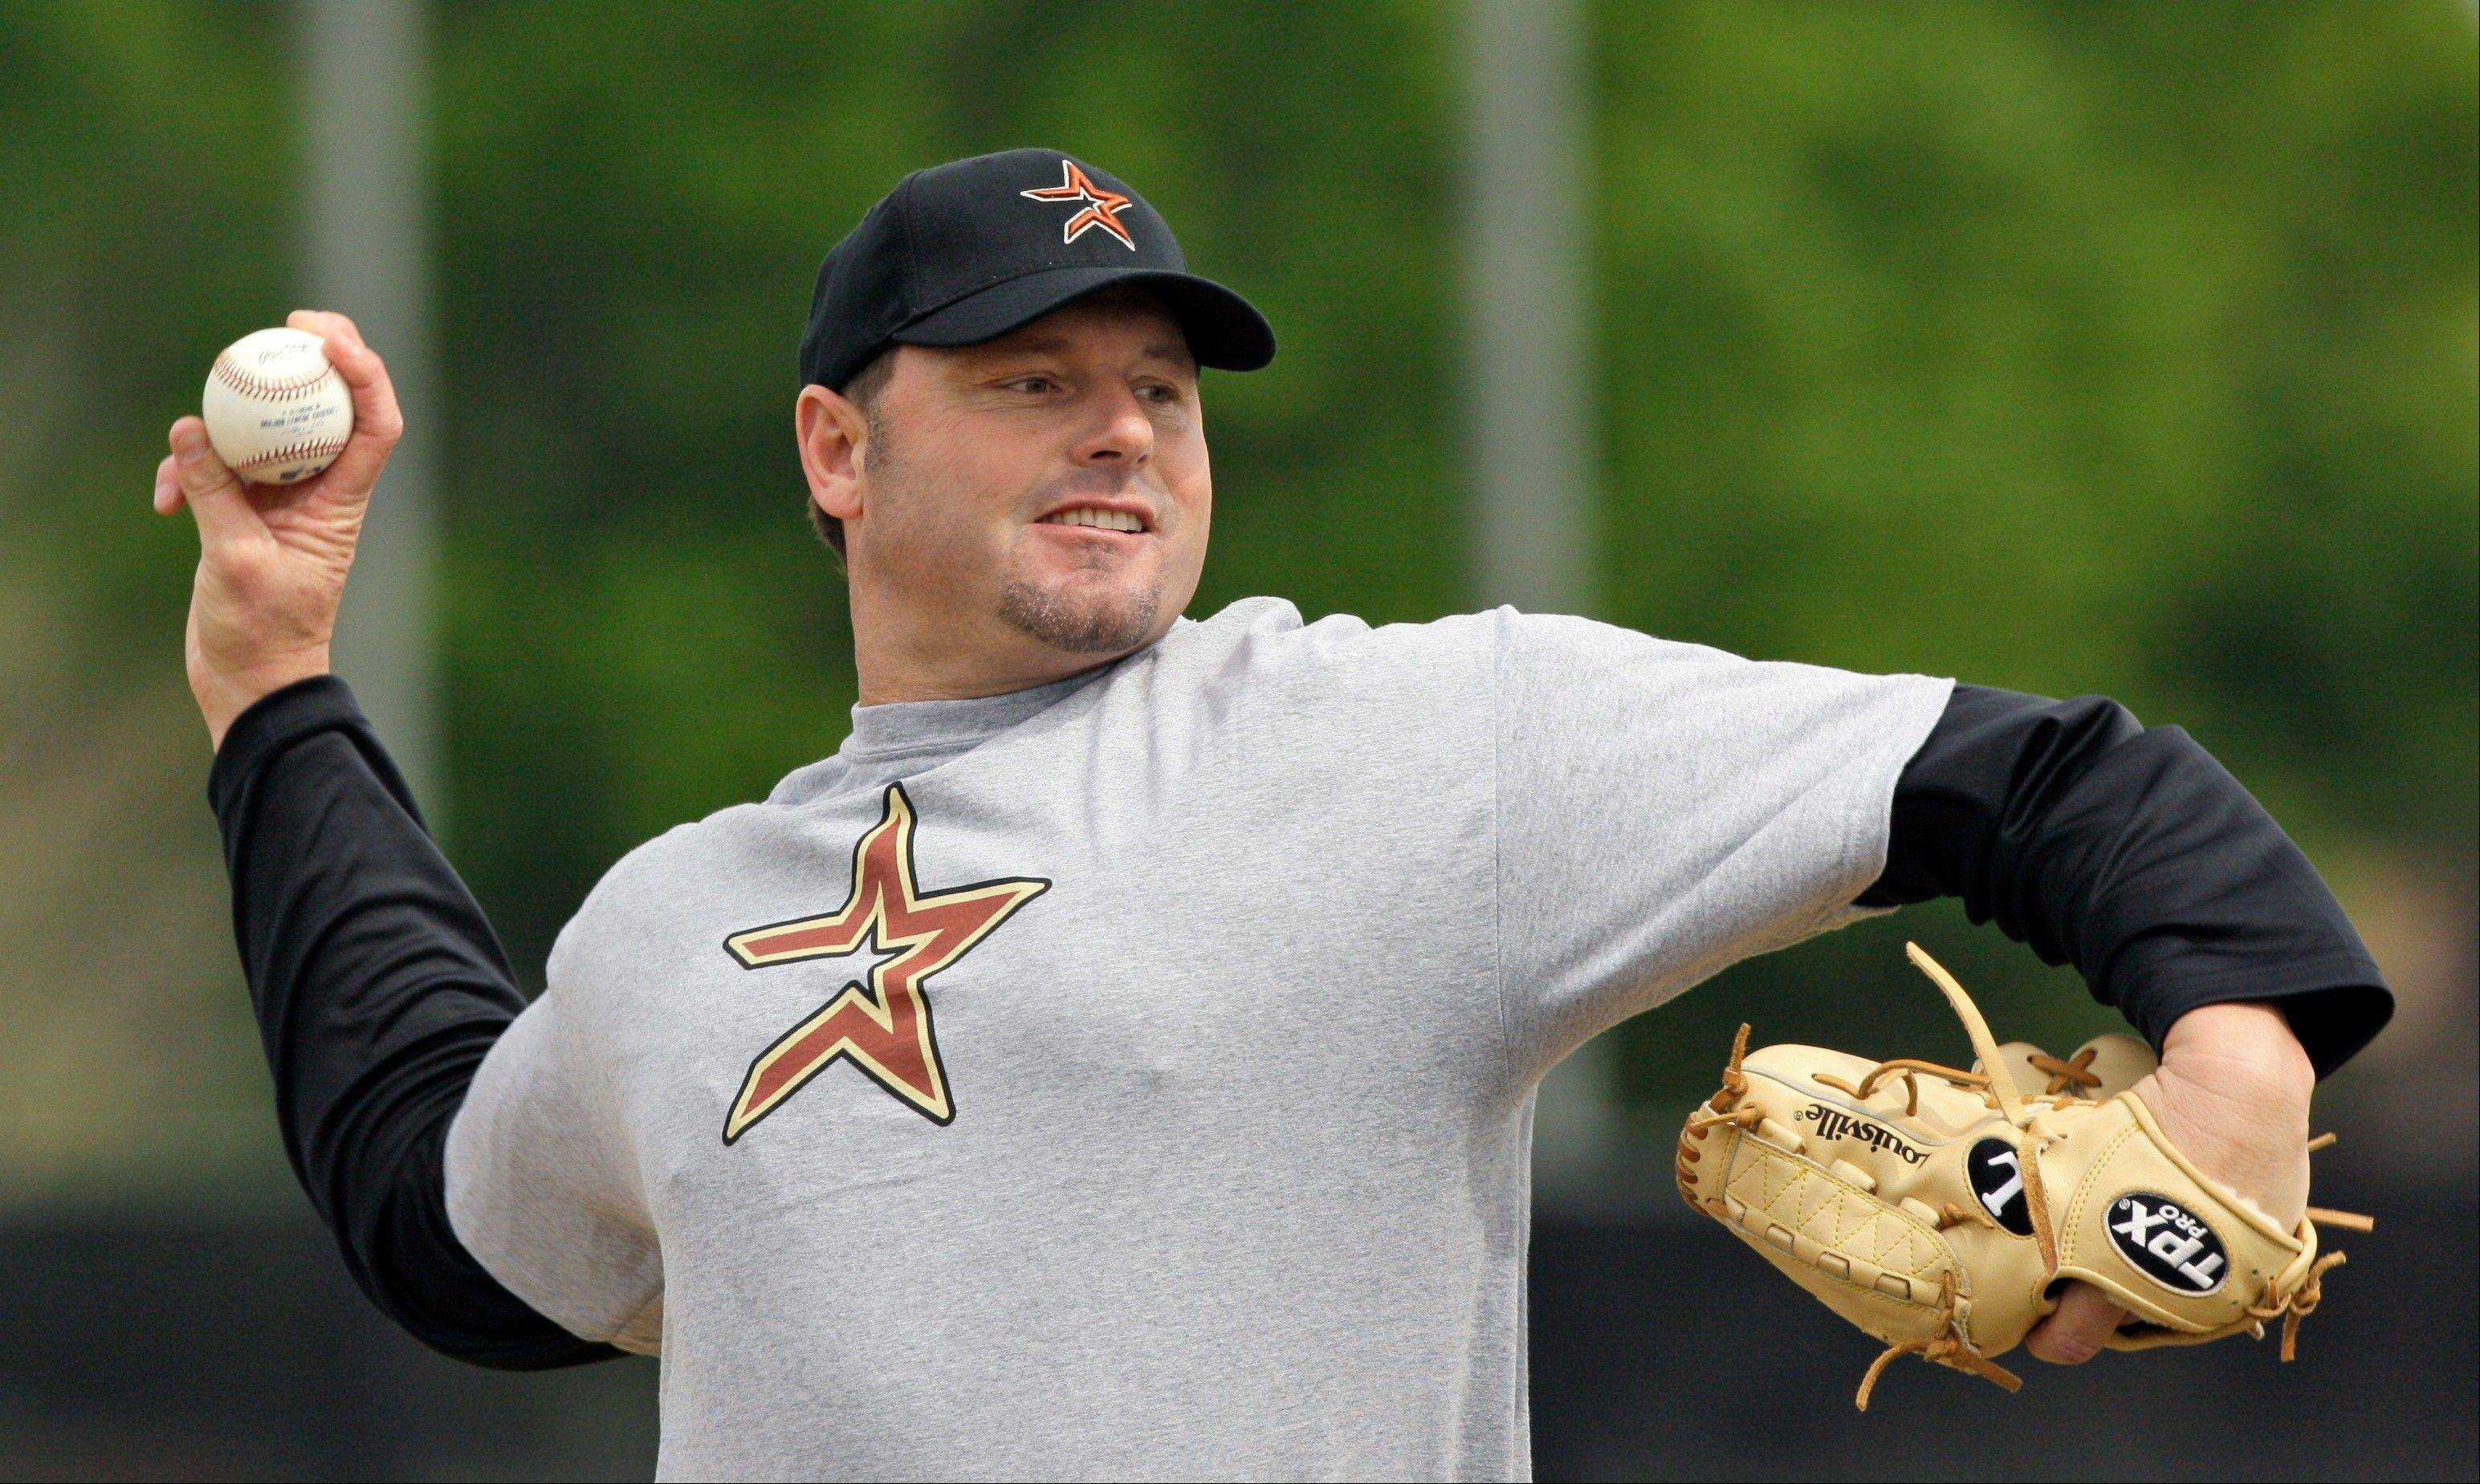 This Feb. 27, 2008 file photo shows Roger Clemens throwing a pitch during batting practice at the Houston Astros minor league spring training facility in Kissimmee, Fla. Clemens has signed with the Sugar Land Skeeters of the independent Atlantic League and is expected to start for them on Saturday at home against Bridgeport.